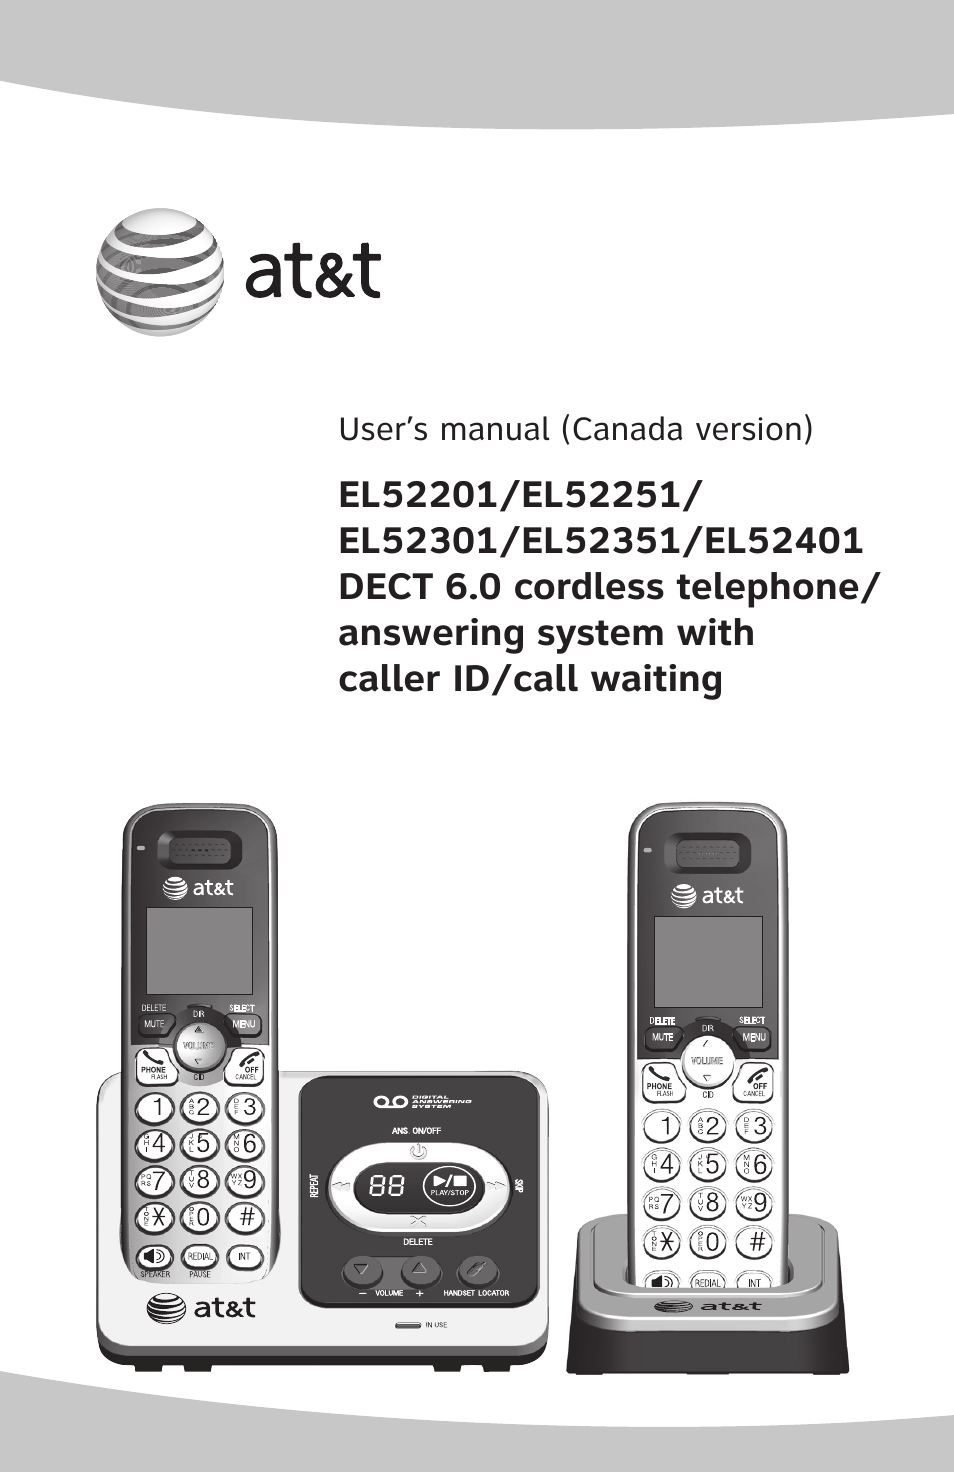 AT&T DECT 6.0 EL52201 User Manual | 83 pages | Also for: DECT 6.0 EL52301, DECT  6.0 EL52401, DECT 6.0 EL52351, DECT 6.0 EL52251